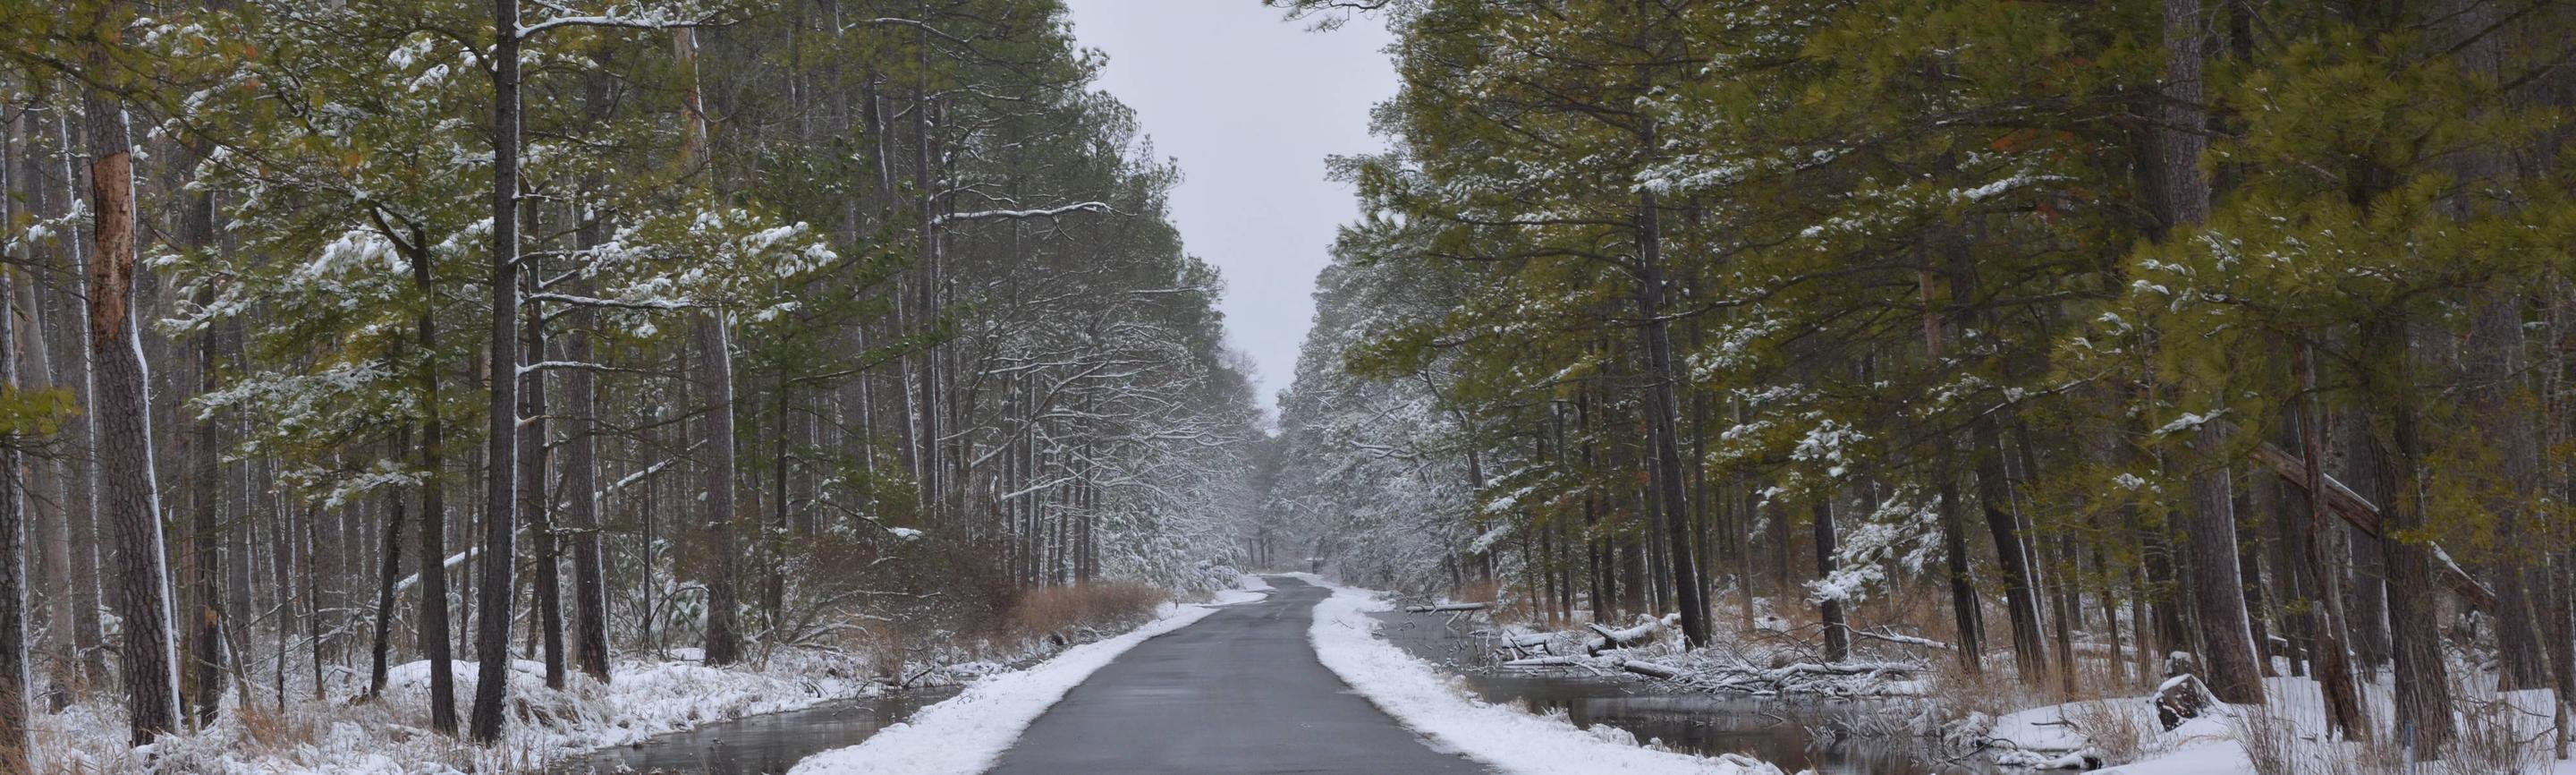 Wildlife Drive at Blackwater National Wildlife Refuge.Wildlife Drive (hunt unit B3) after a snowfall.